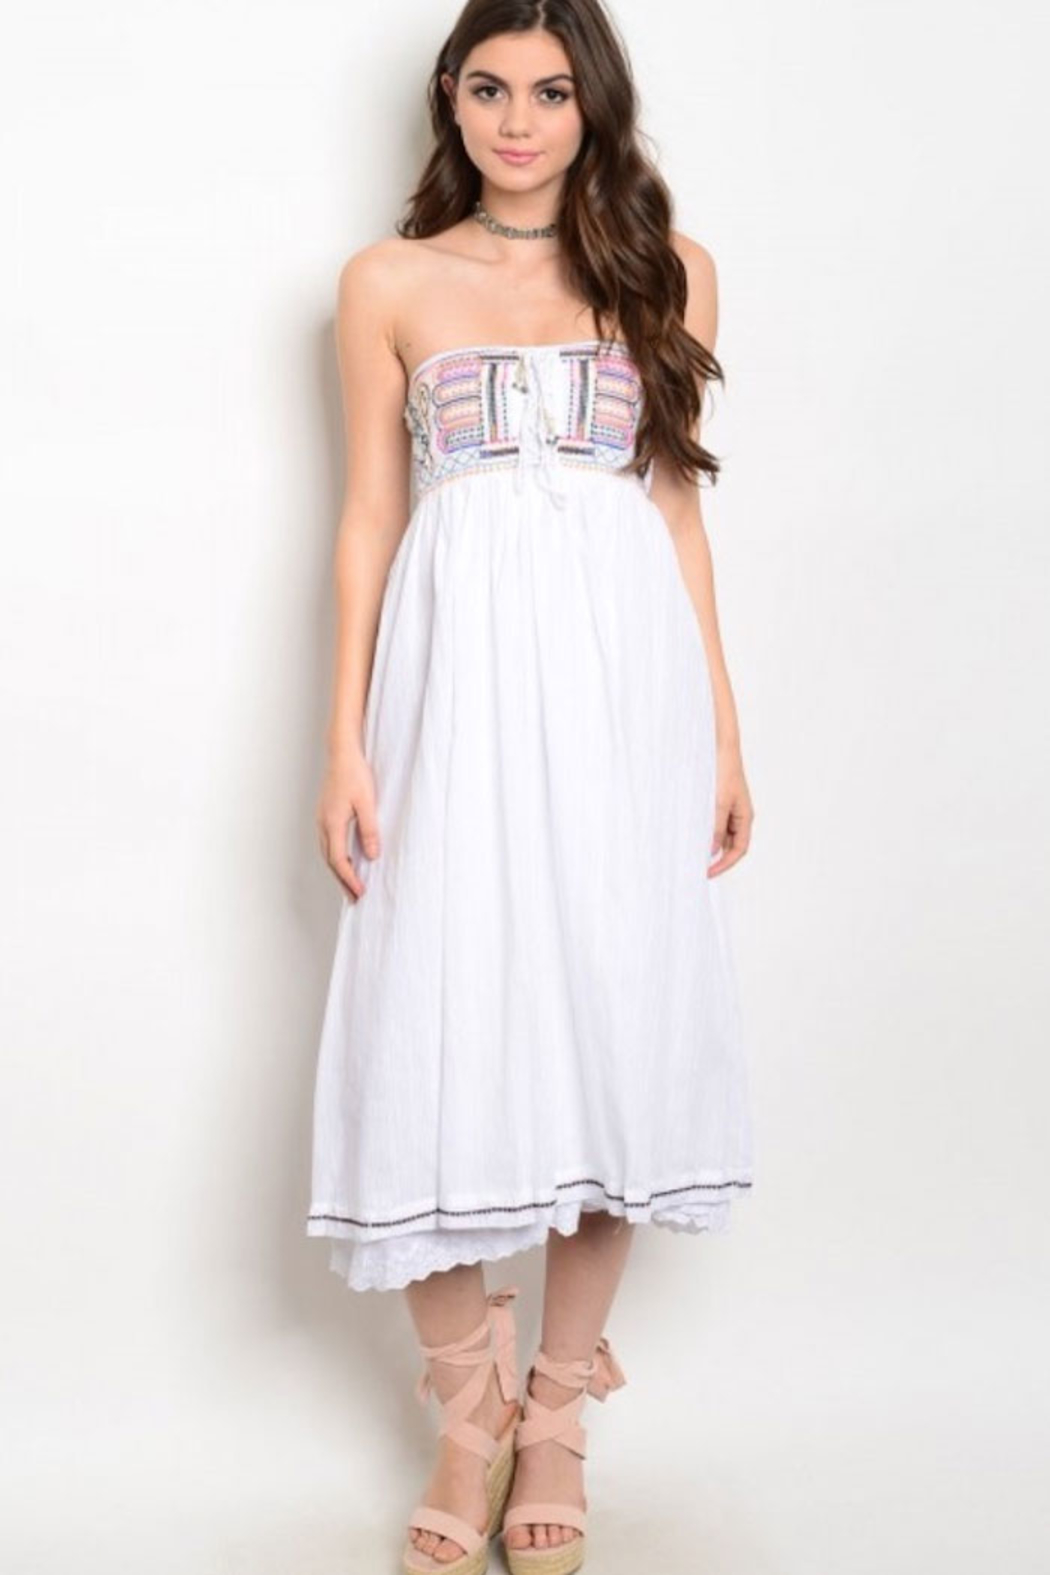 Tracie's White Tribal Dress - Main Image